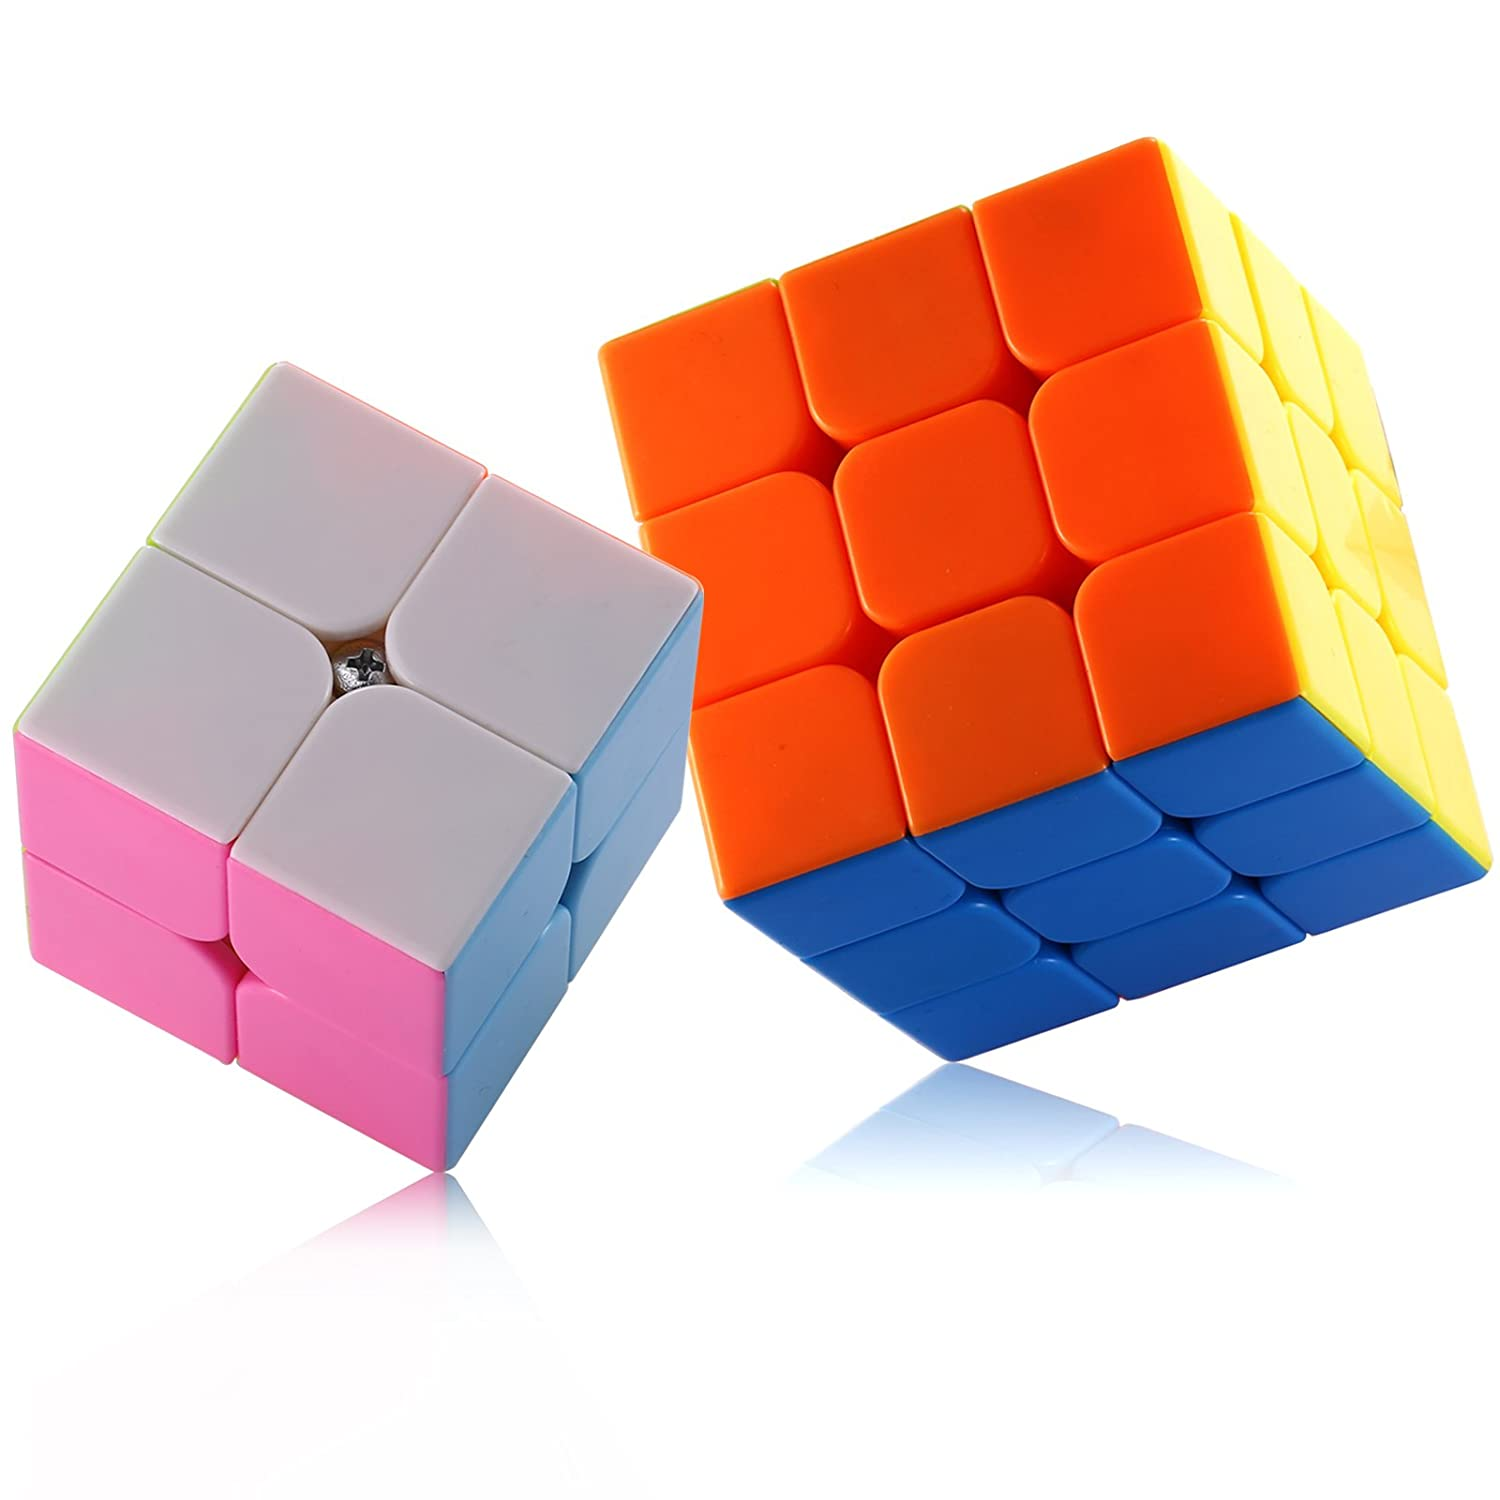 Dreampark 2 Pack 2x2 3x3 Anti-pop Speed Cube Stickerless Smooth Magic Cube Puzzles